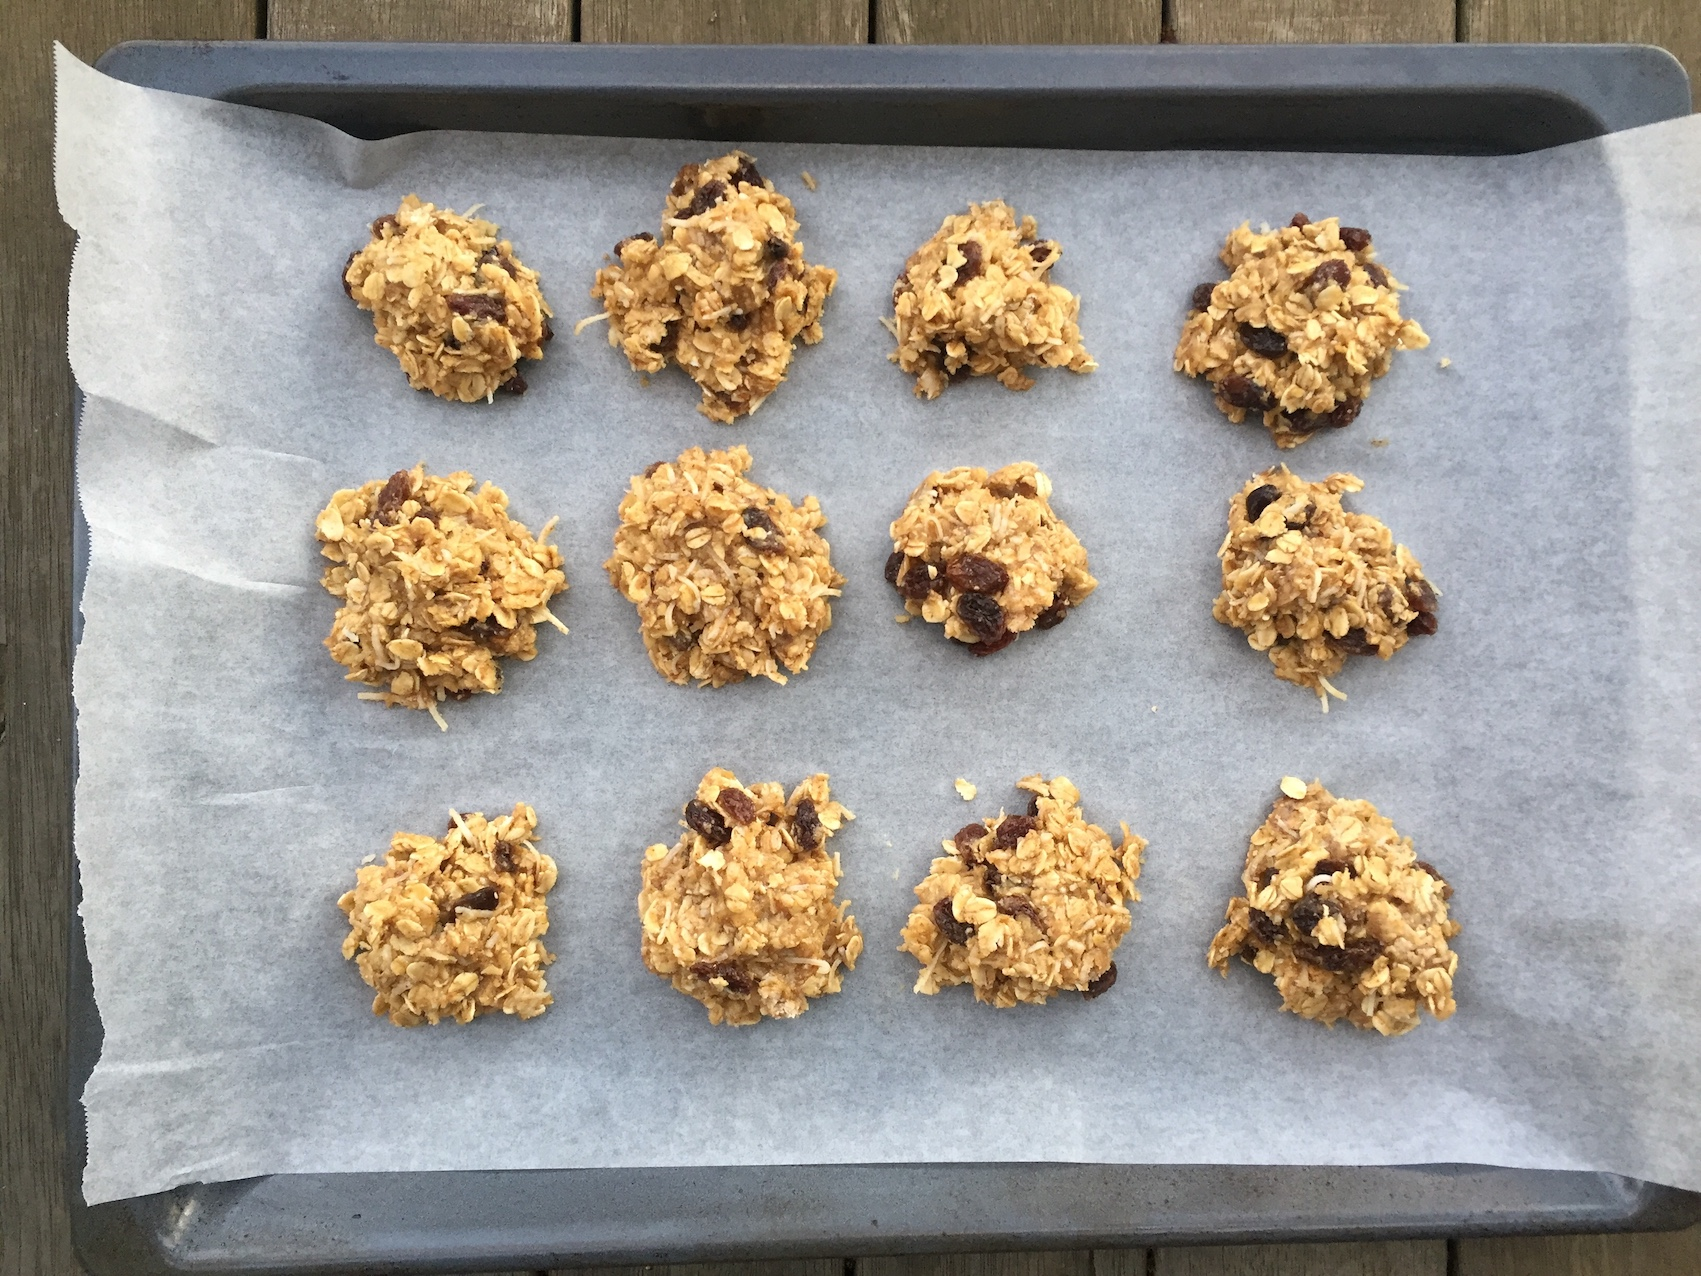 The muesli cookies on the tray before going into the oven